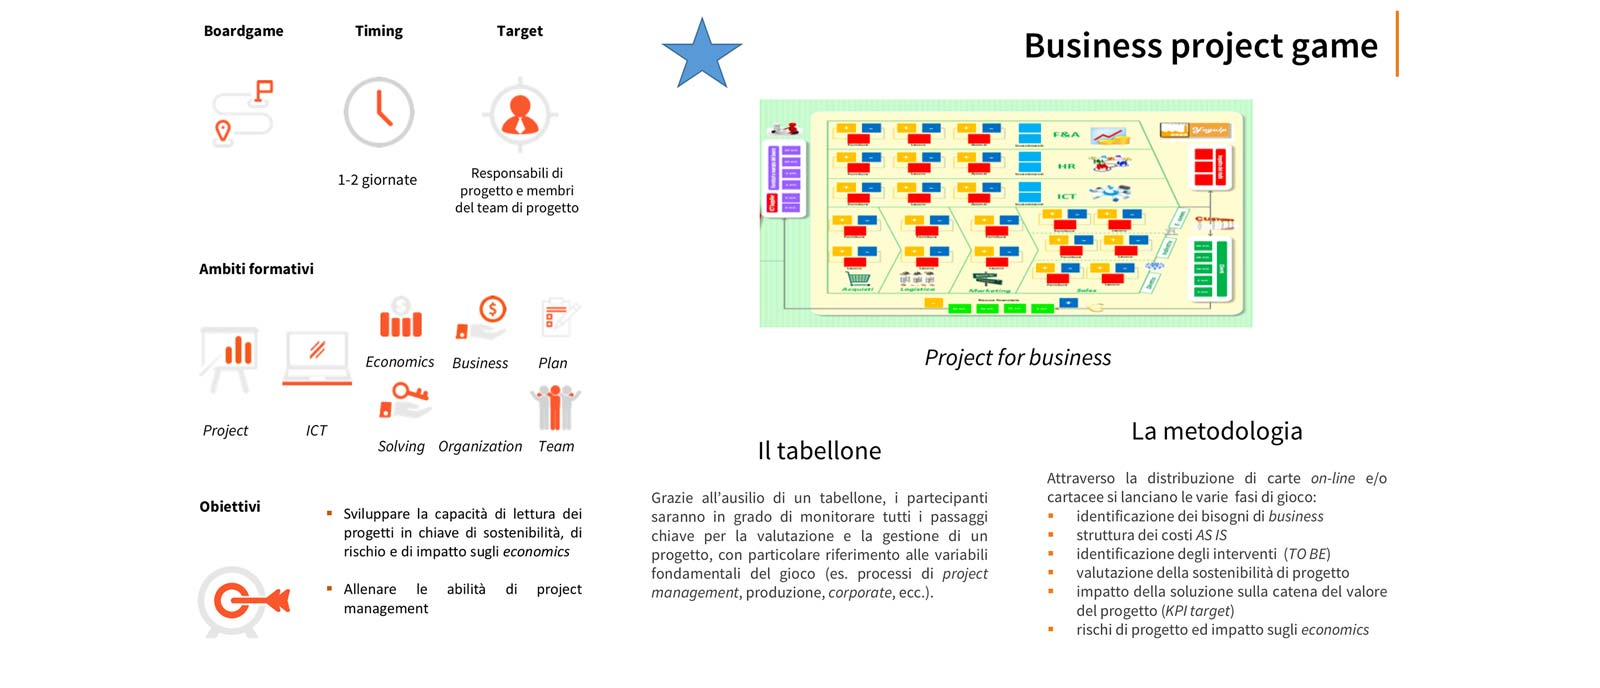 e-business-project-game